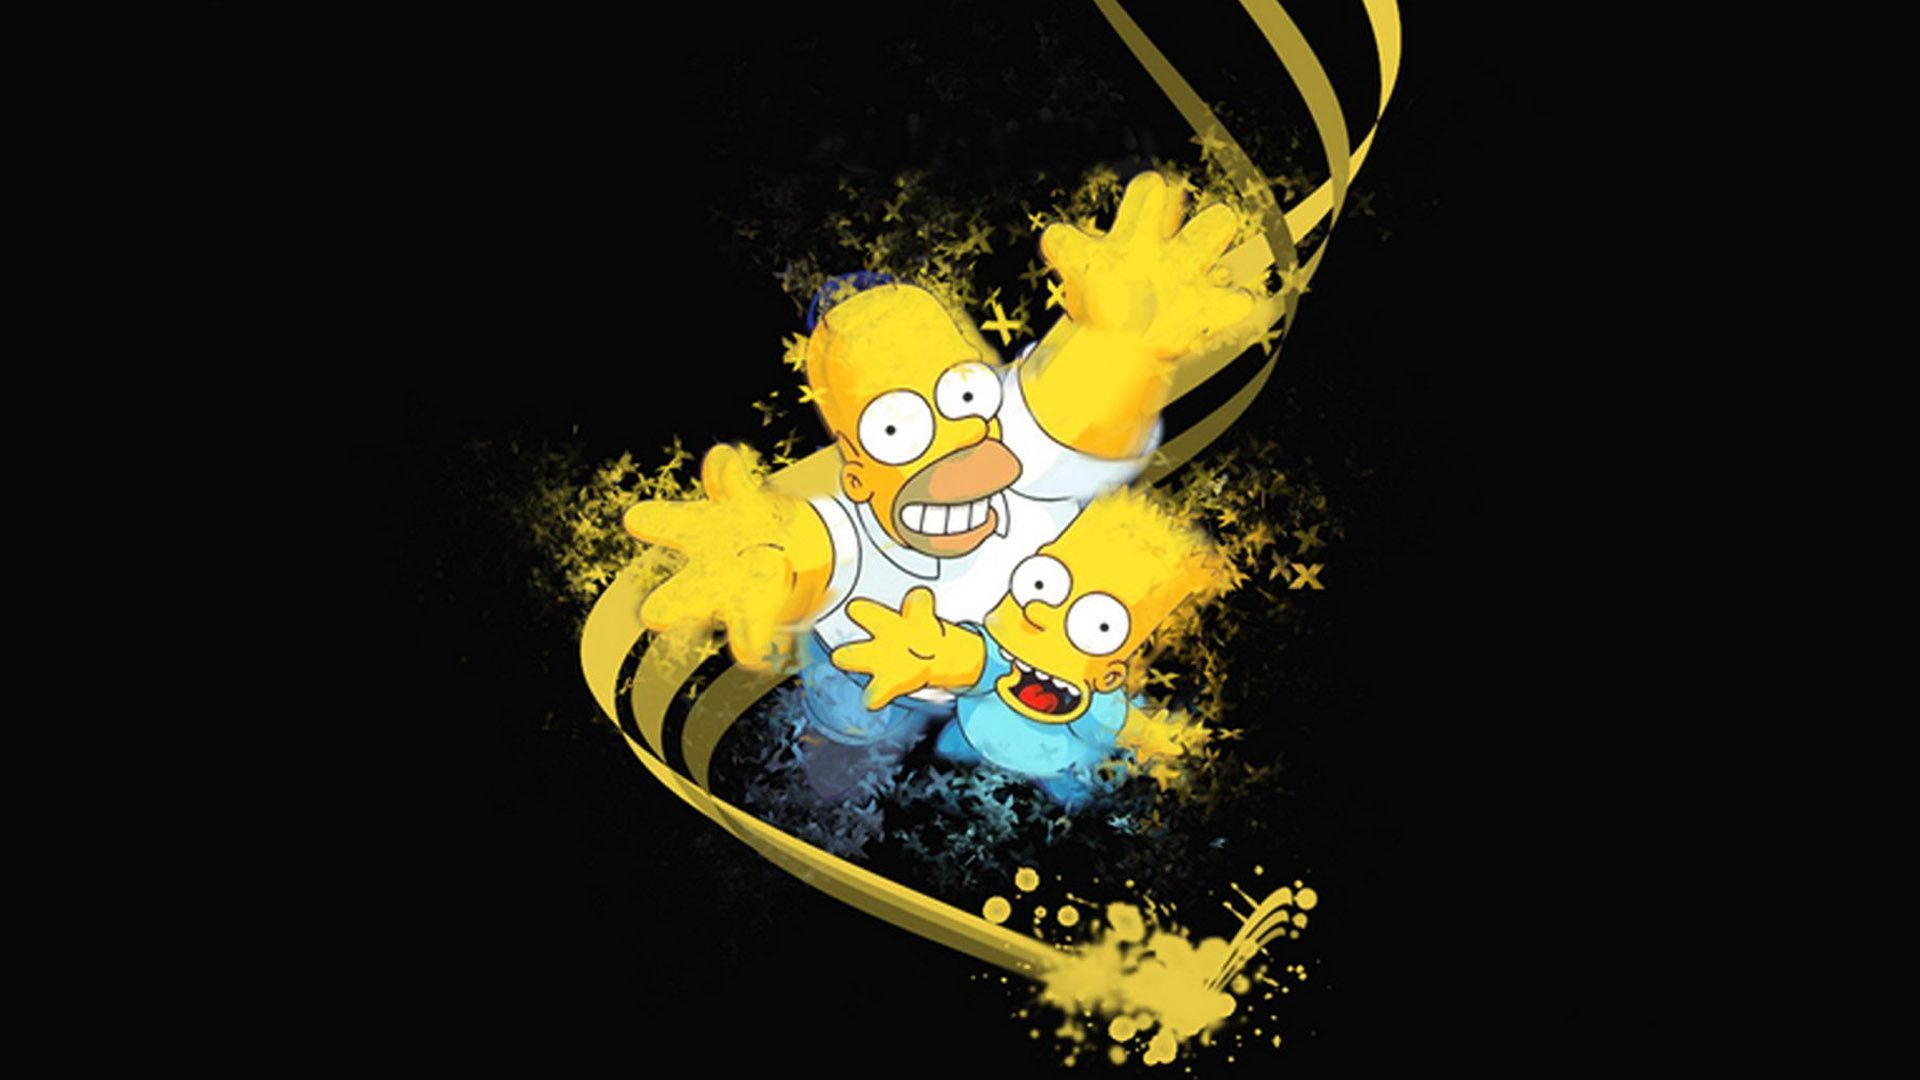 The Simpsons Hd Wallpaper Background Image 1920x1080